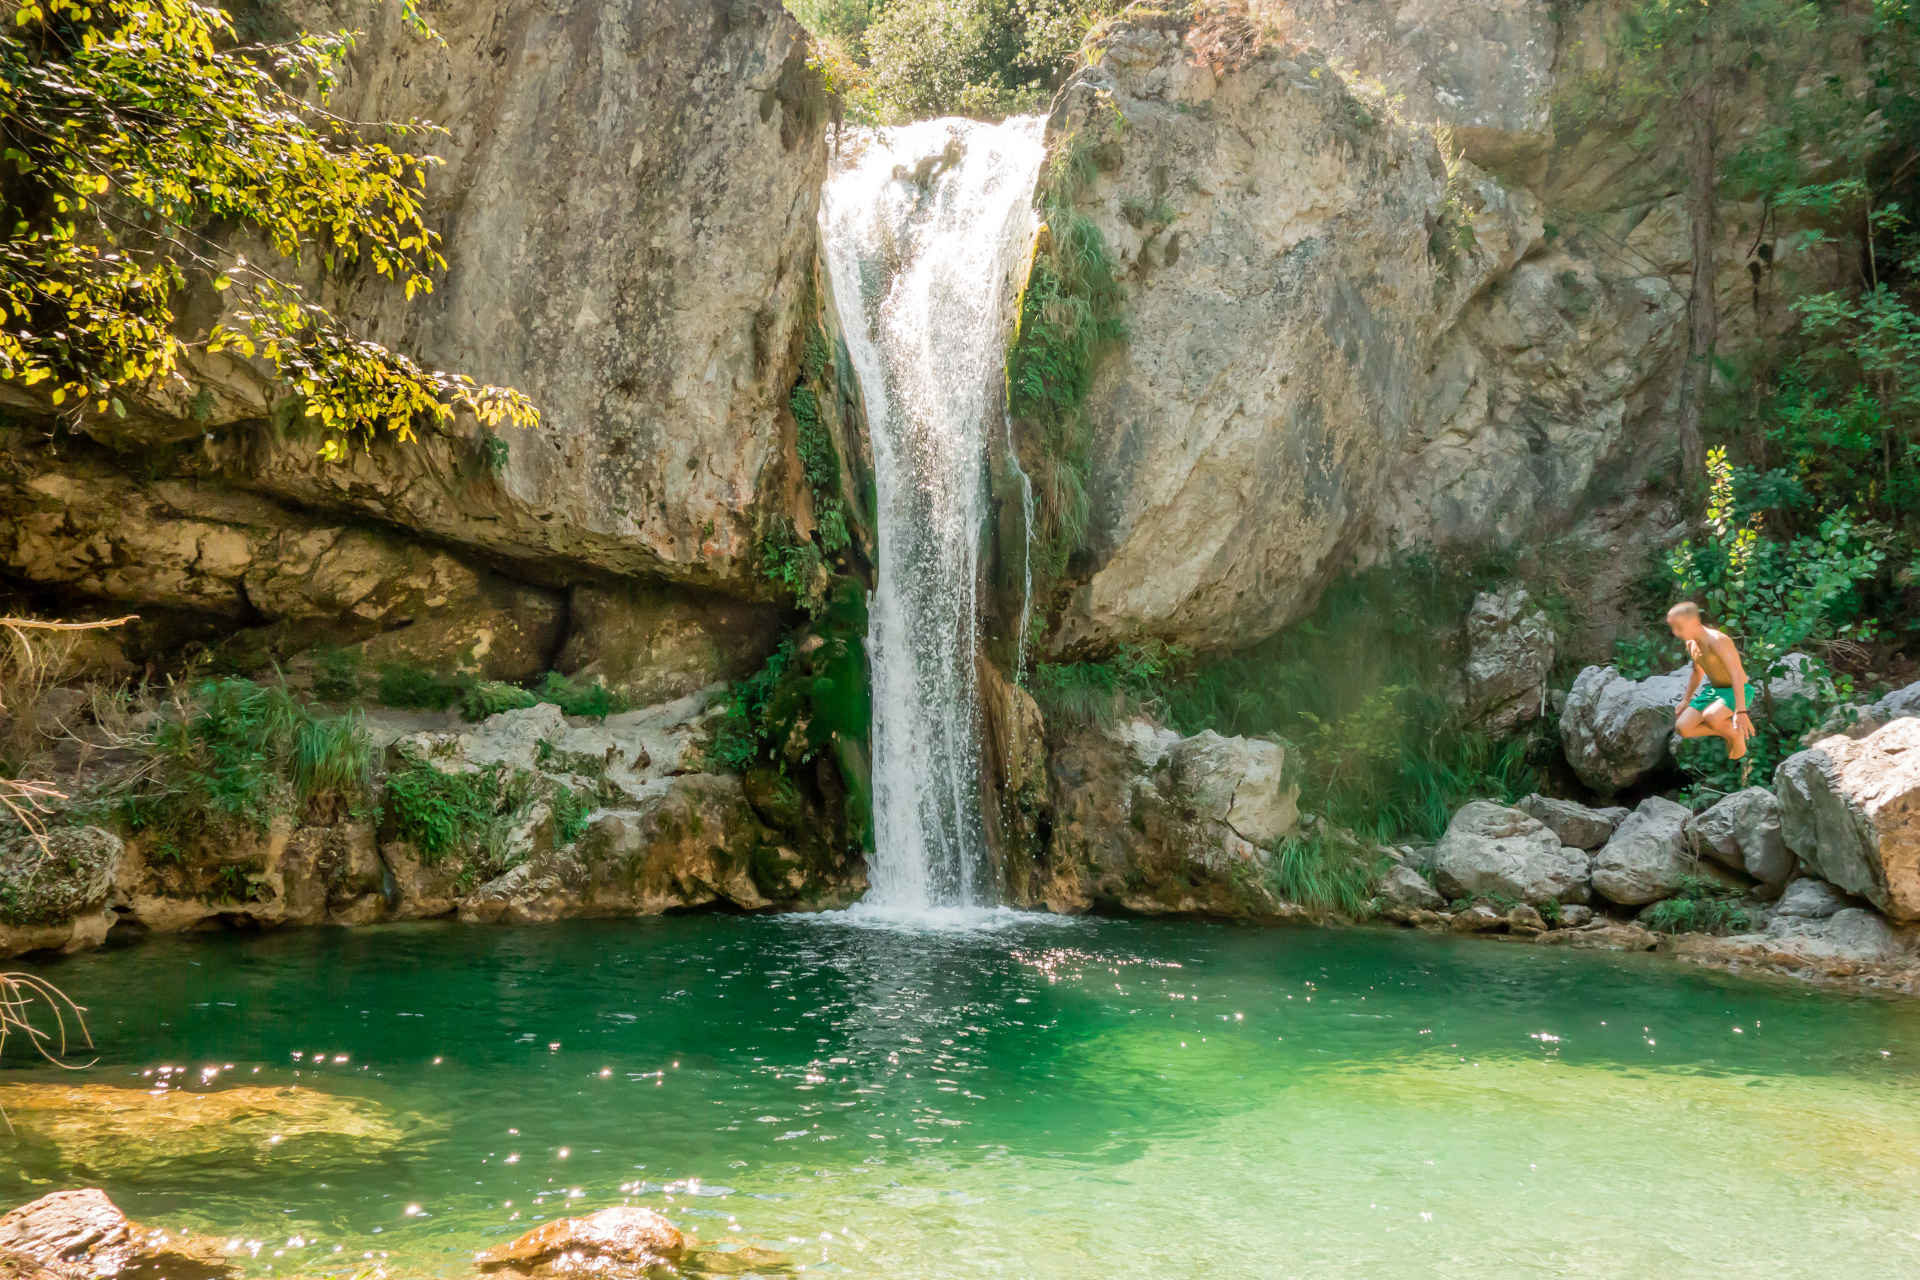 One of the waterfalls in the Orlias Canyon is called Orpheus.